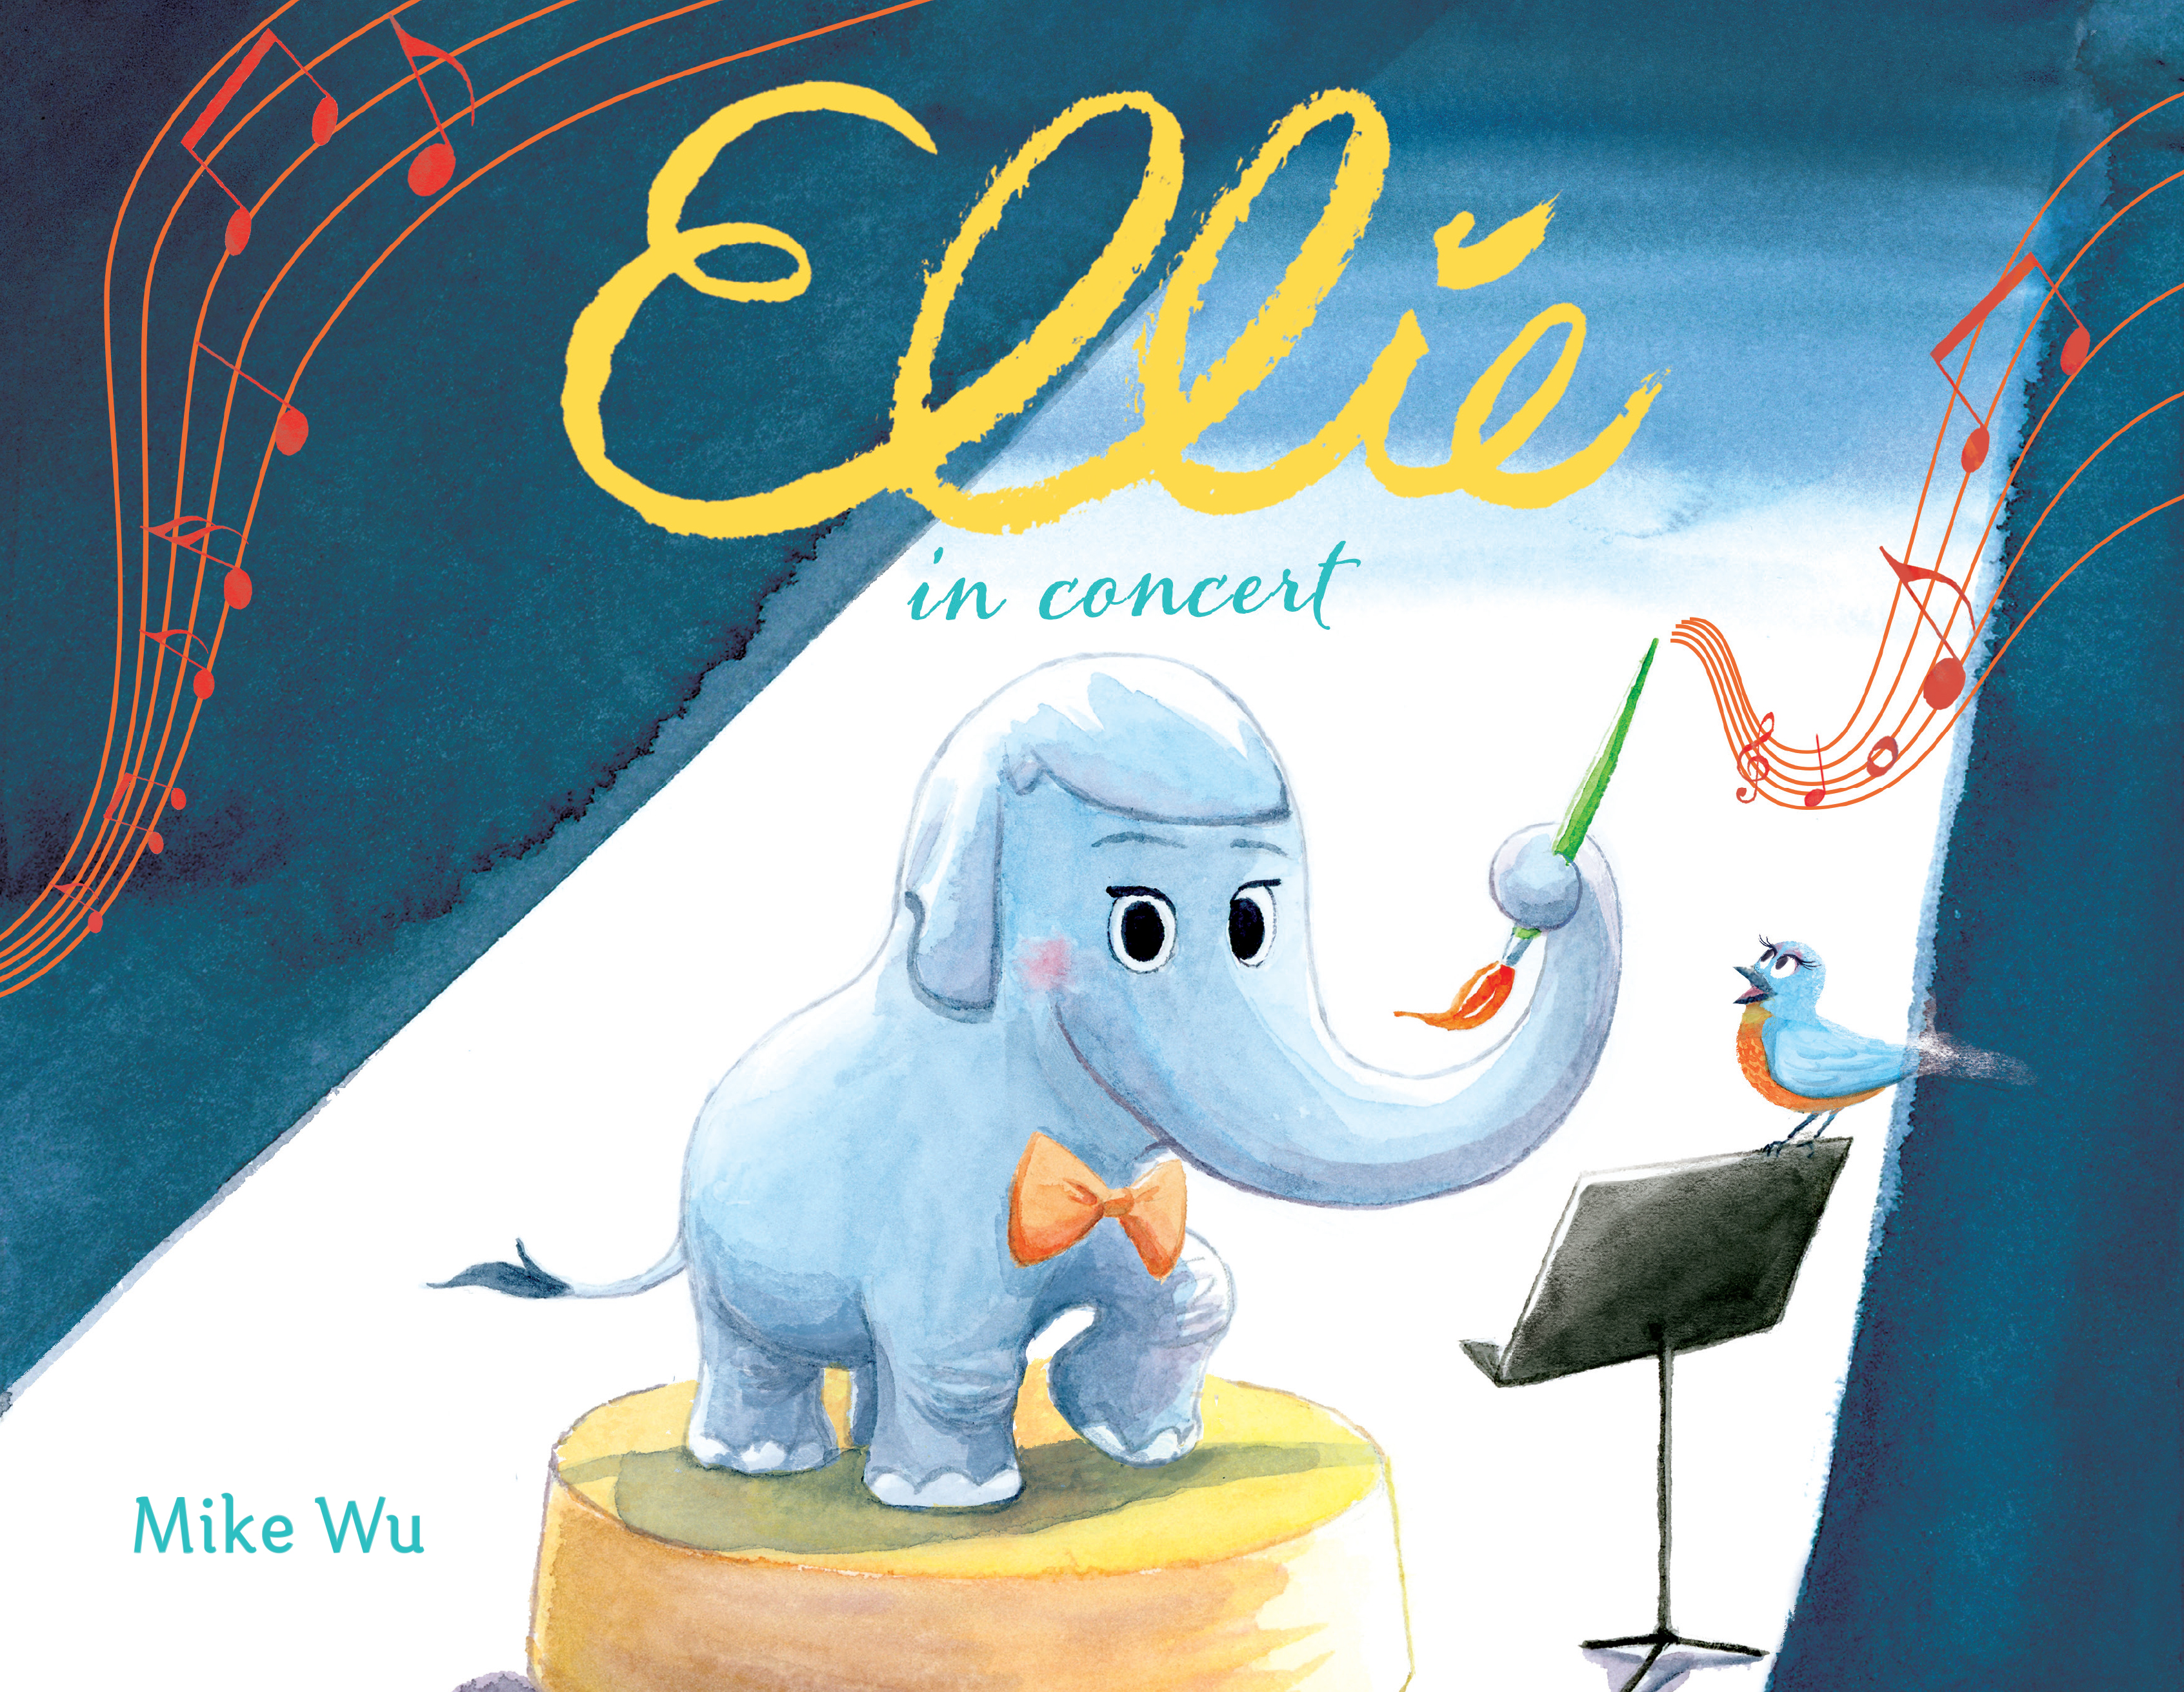 Sunday Story Time with Mike Wu (Author & Illustrator of Ellie)